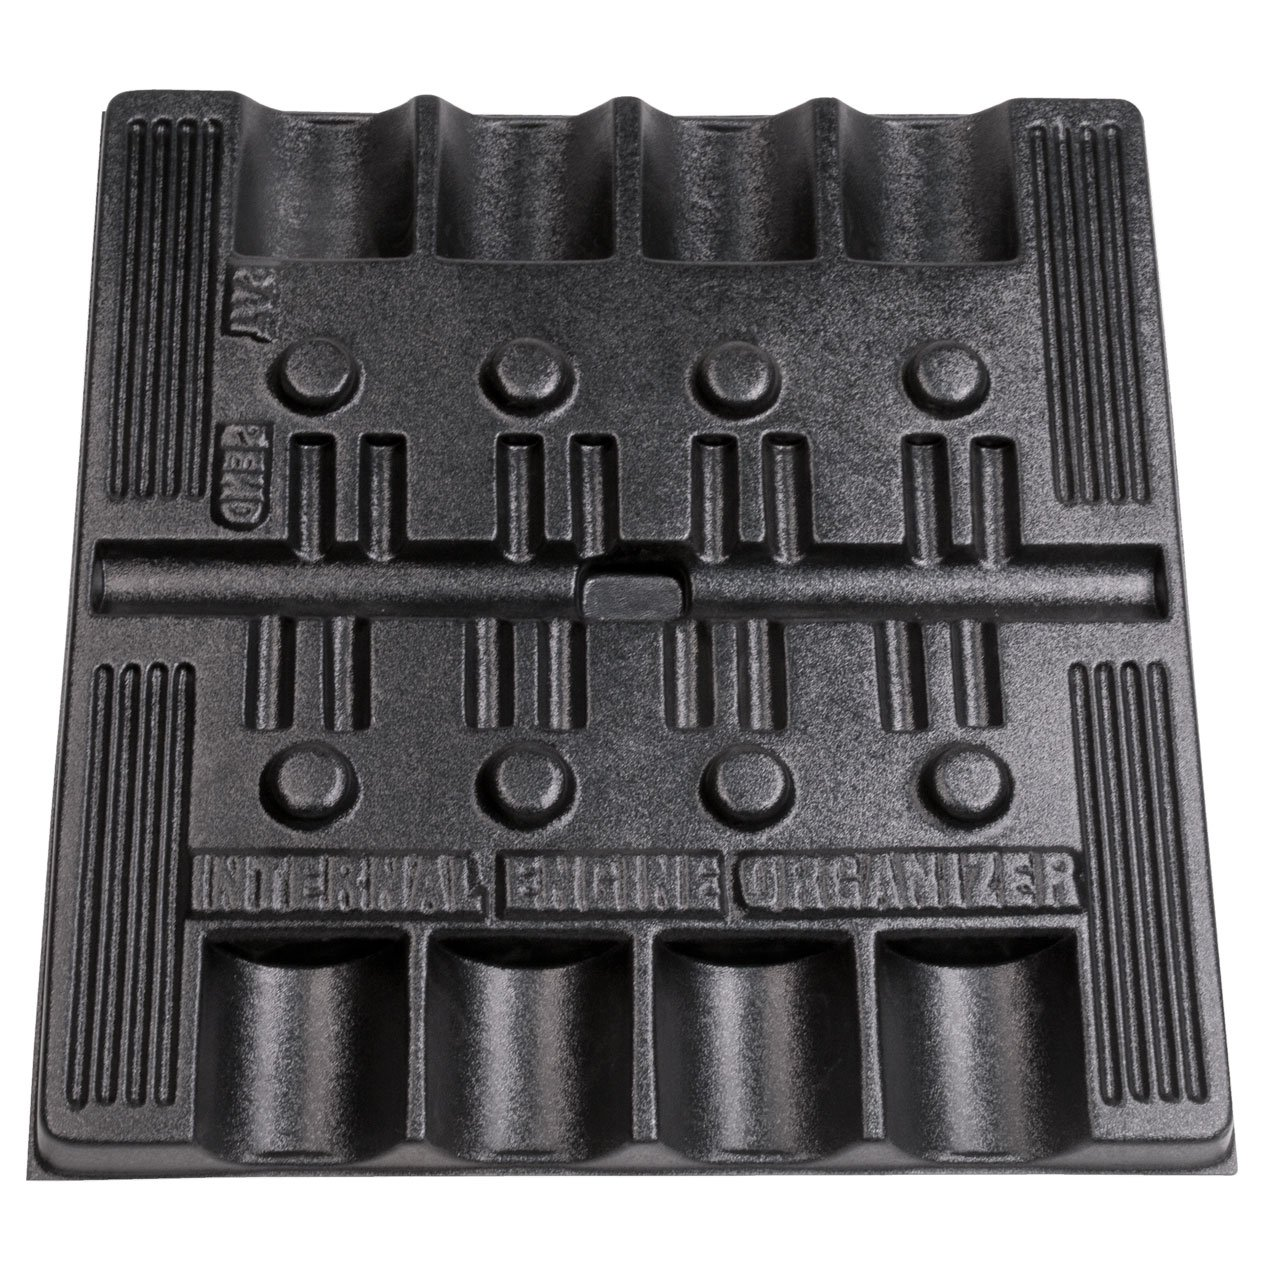 Goodson Organizer Tray for Chevy Small Block Parts | 24'' x 25'' x 1-1/2'' by Goodson